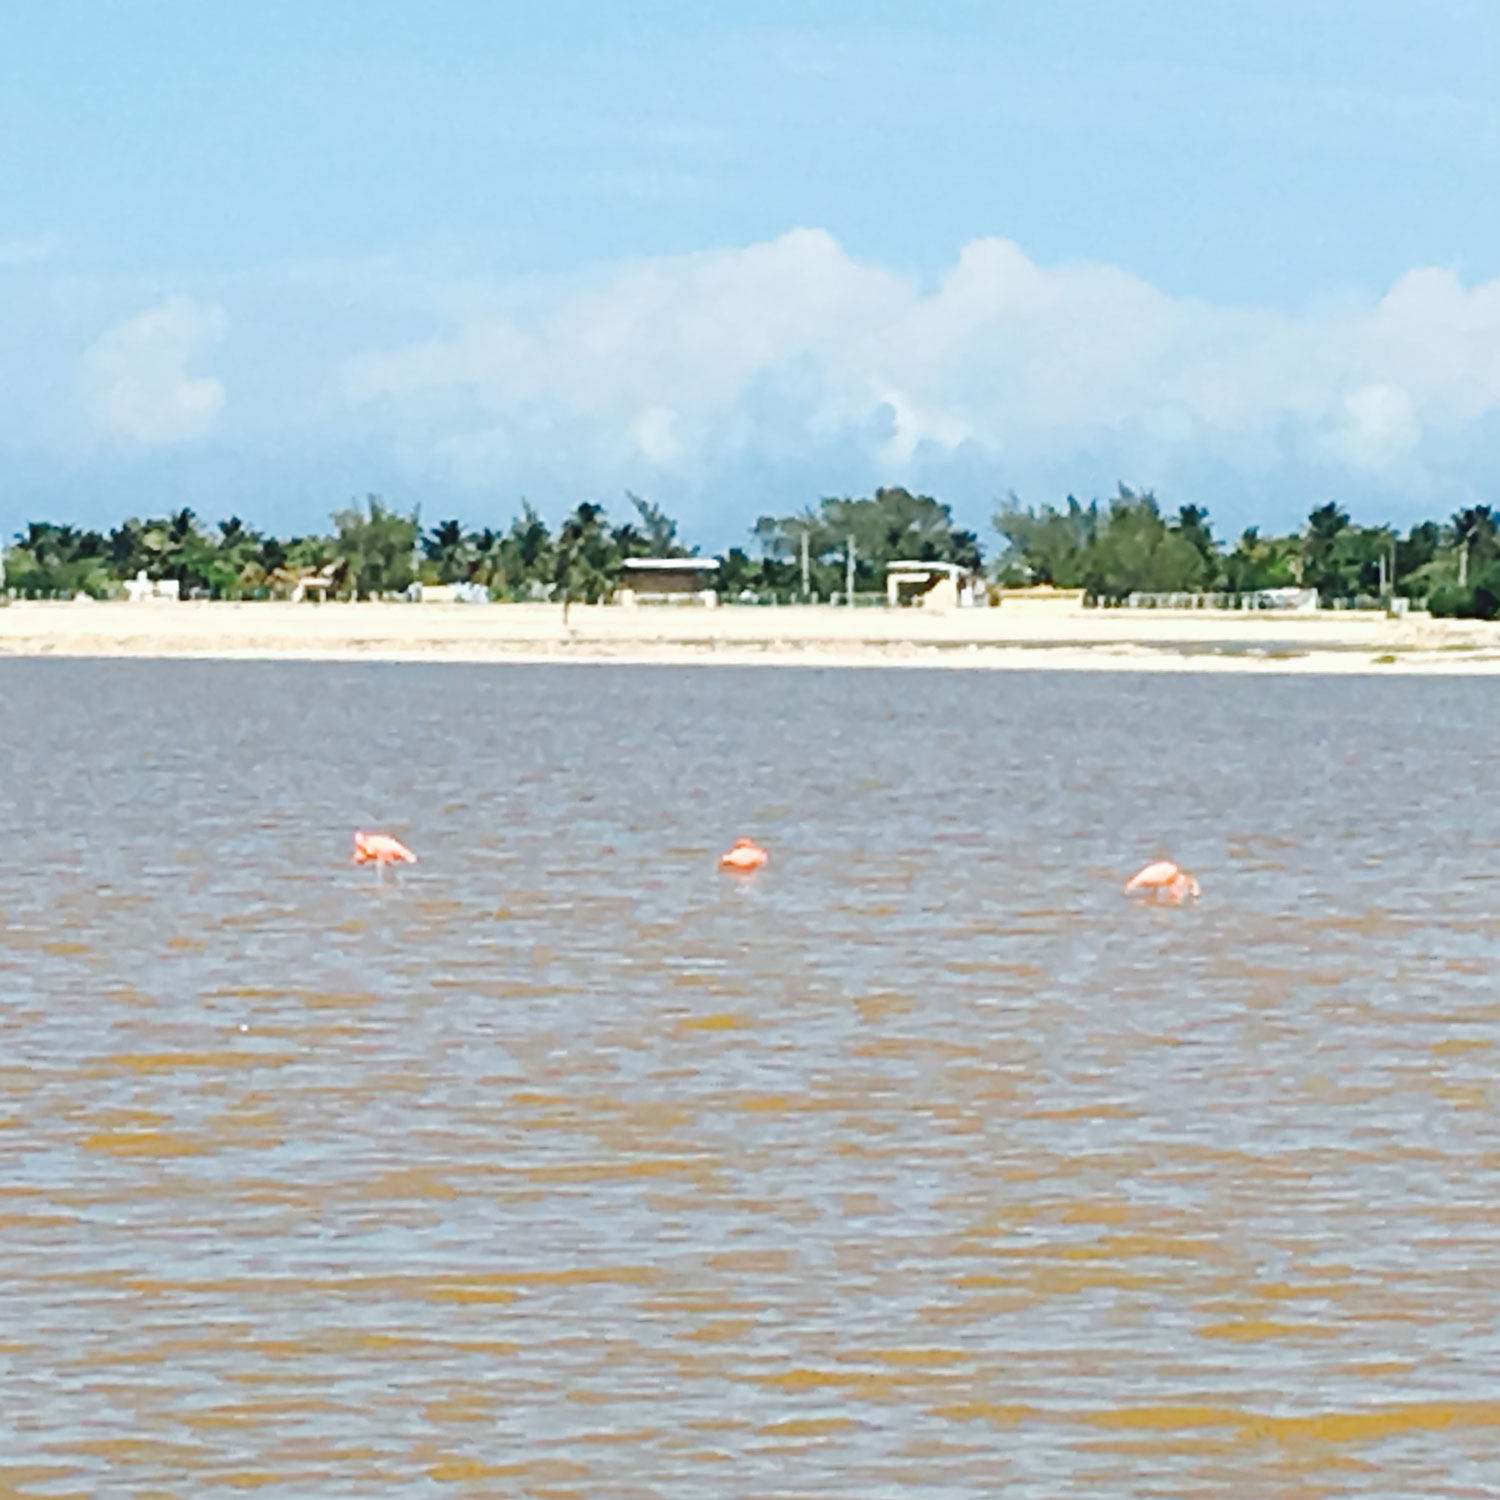 Pink flamingos can be seen in the adjacent lakes. You can walk around them.